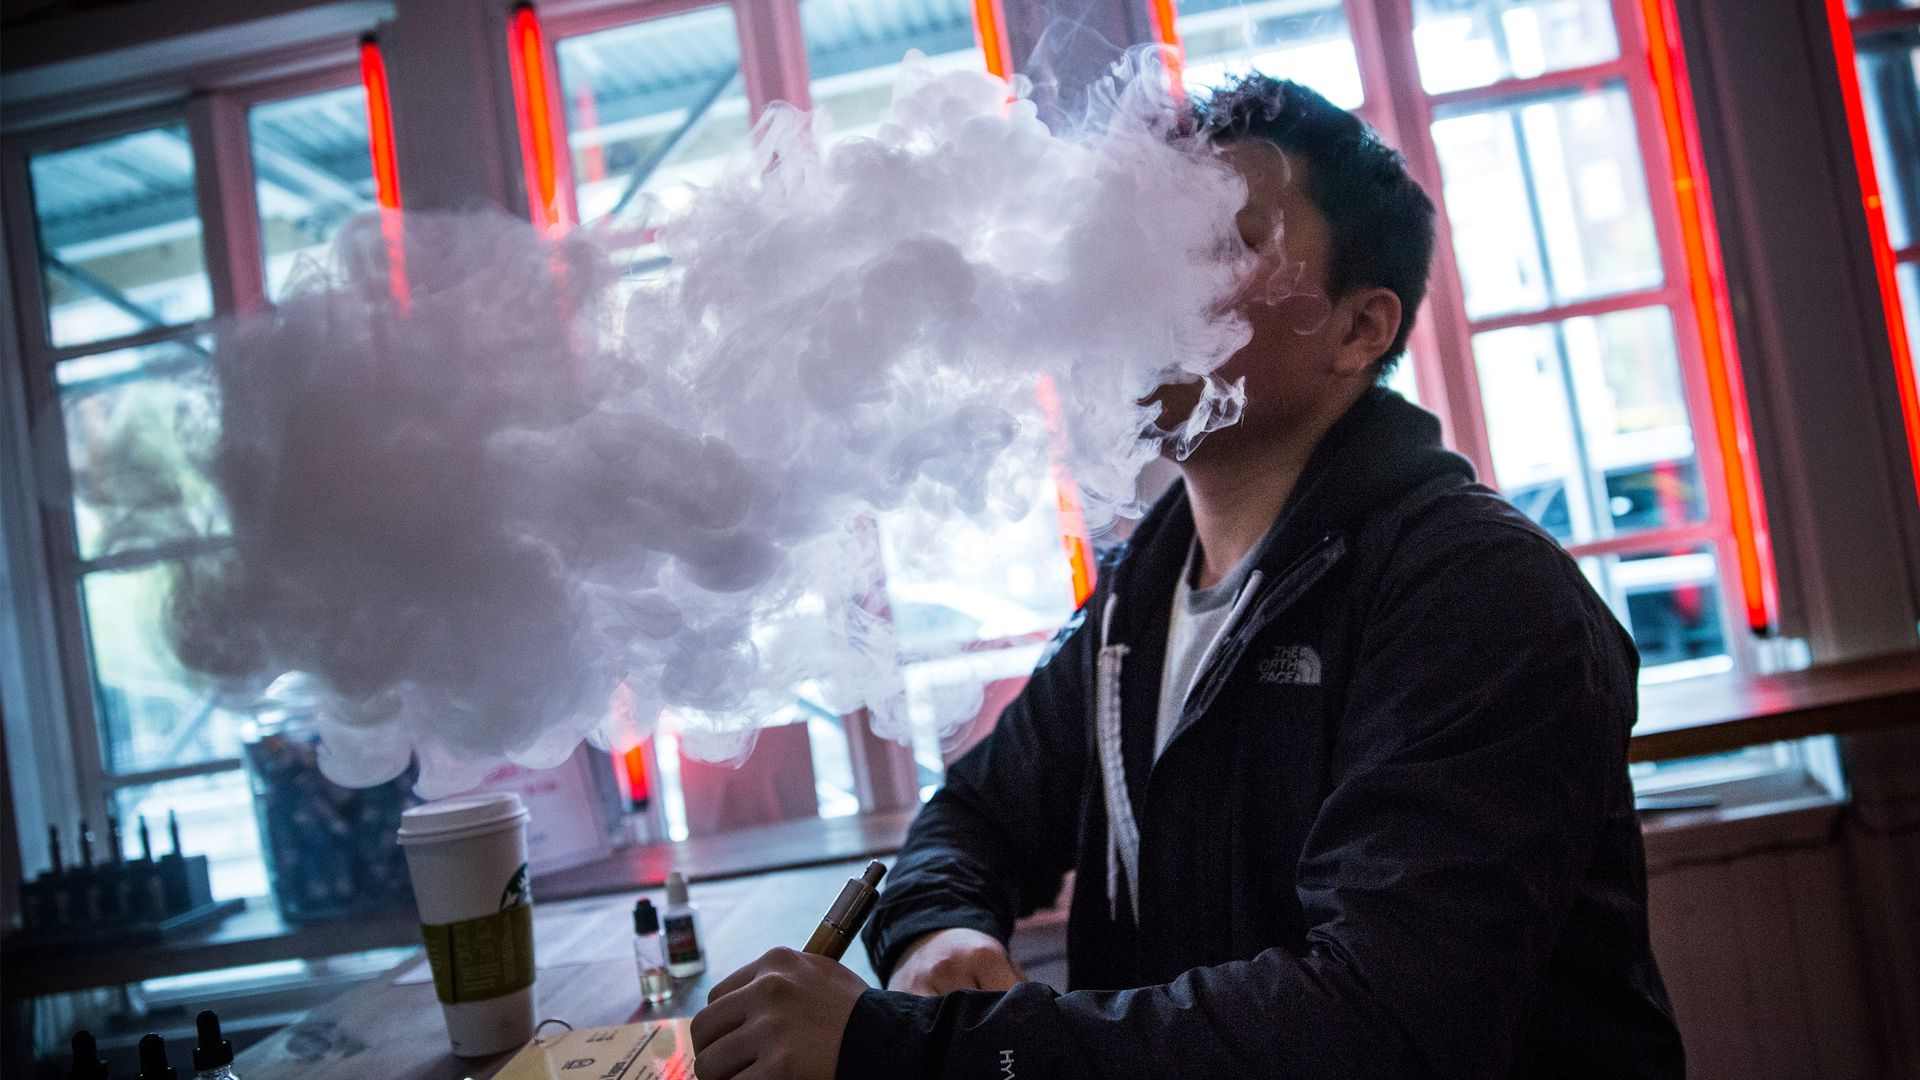 Man vaping in a coffee shop